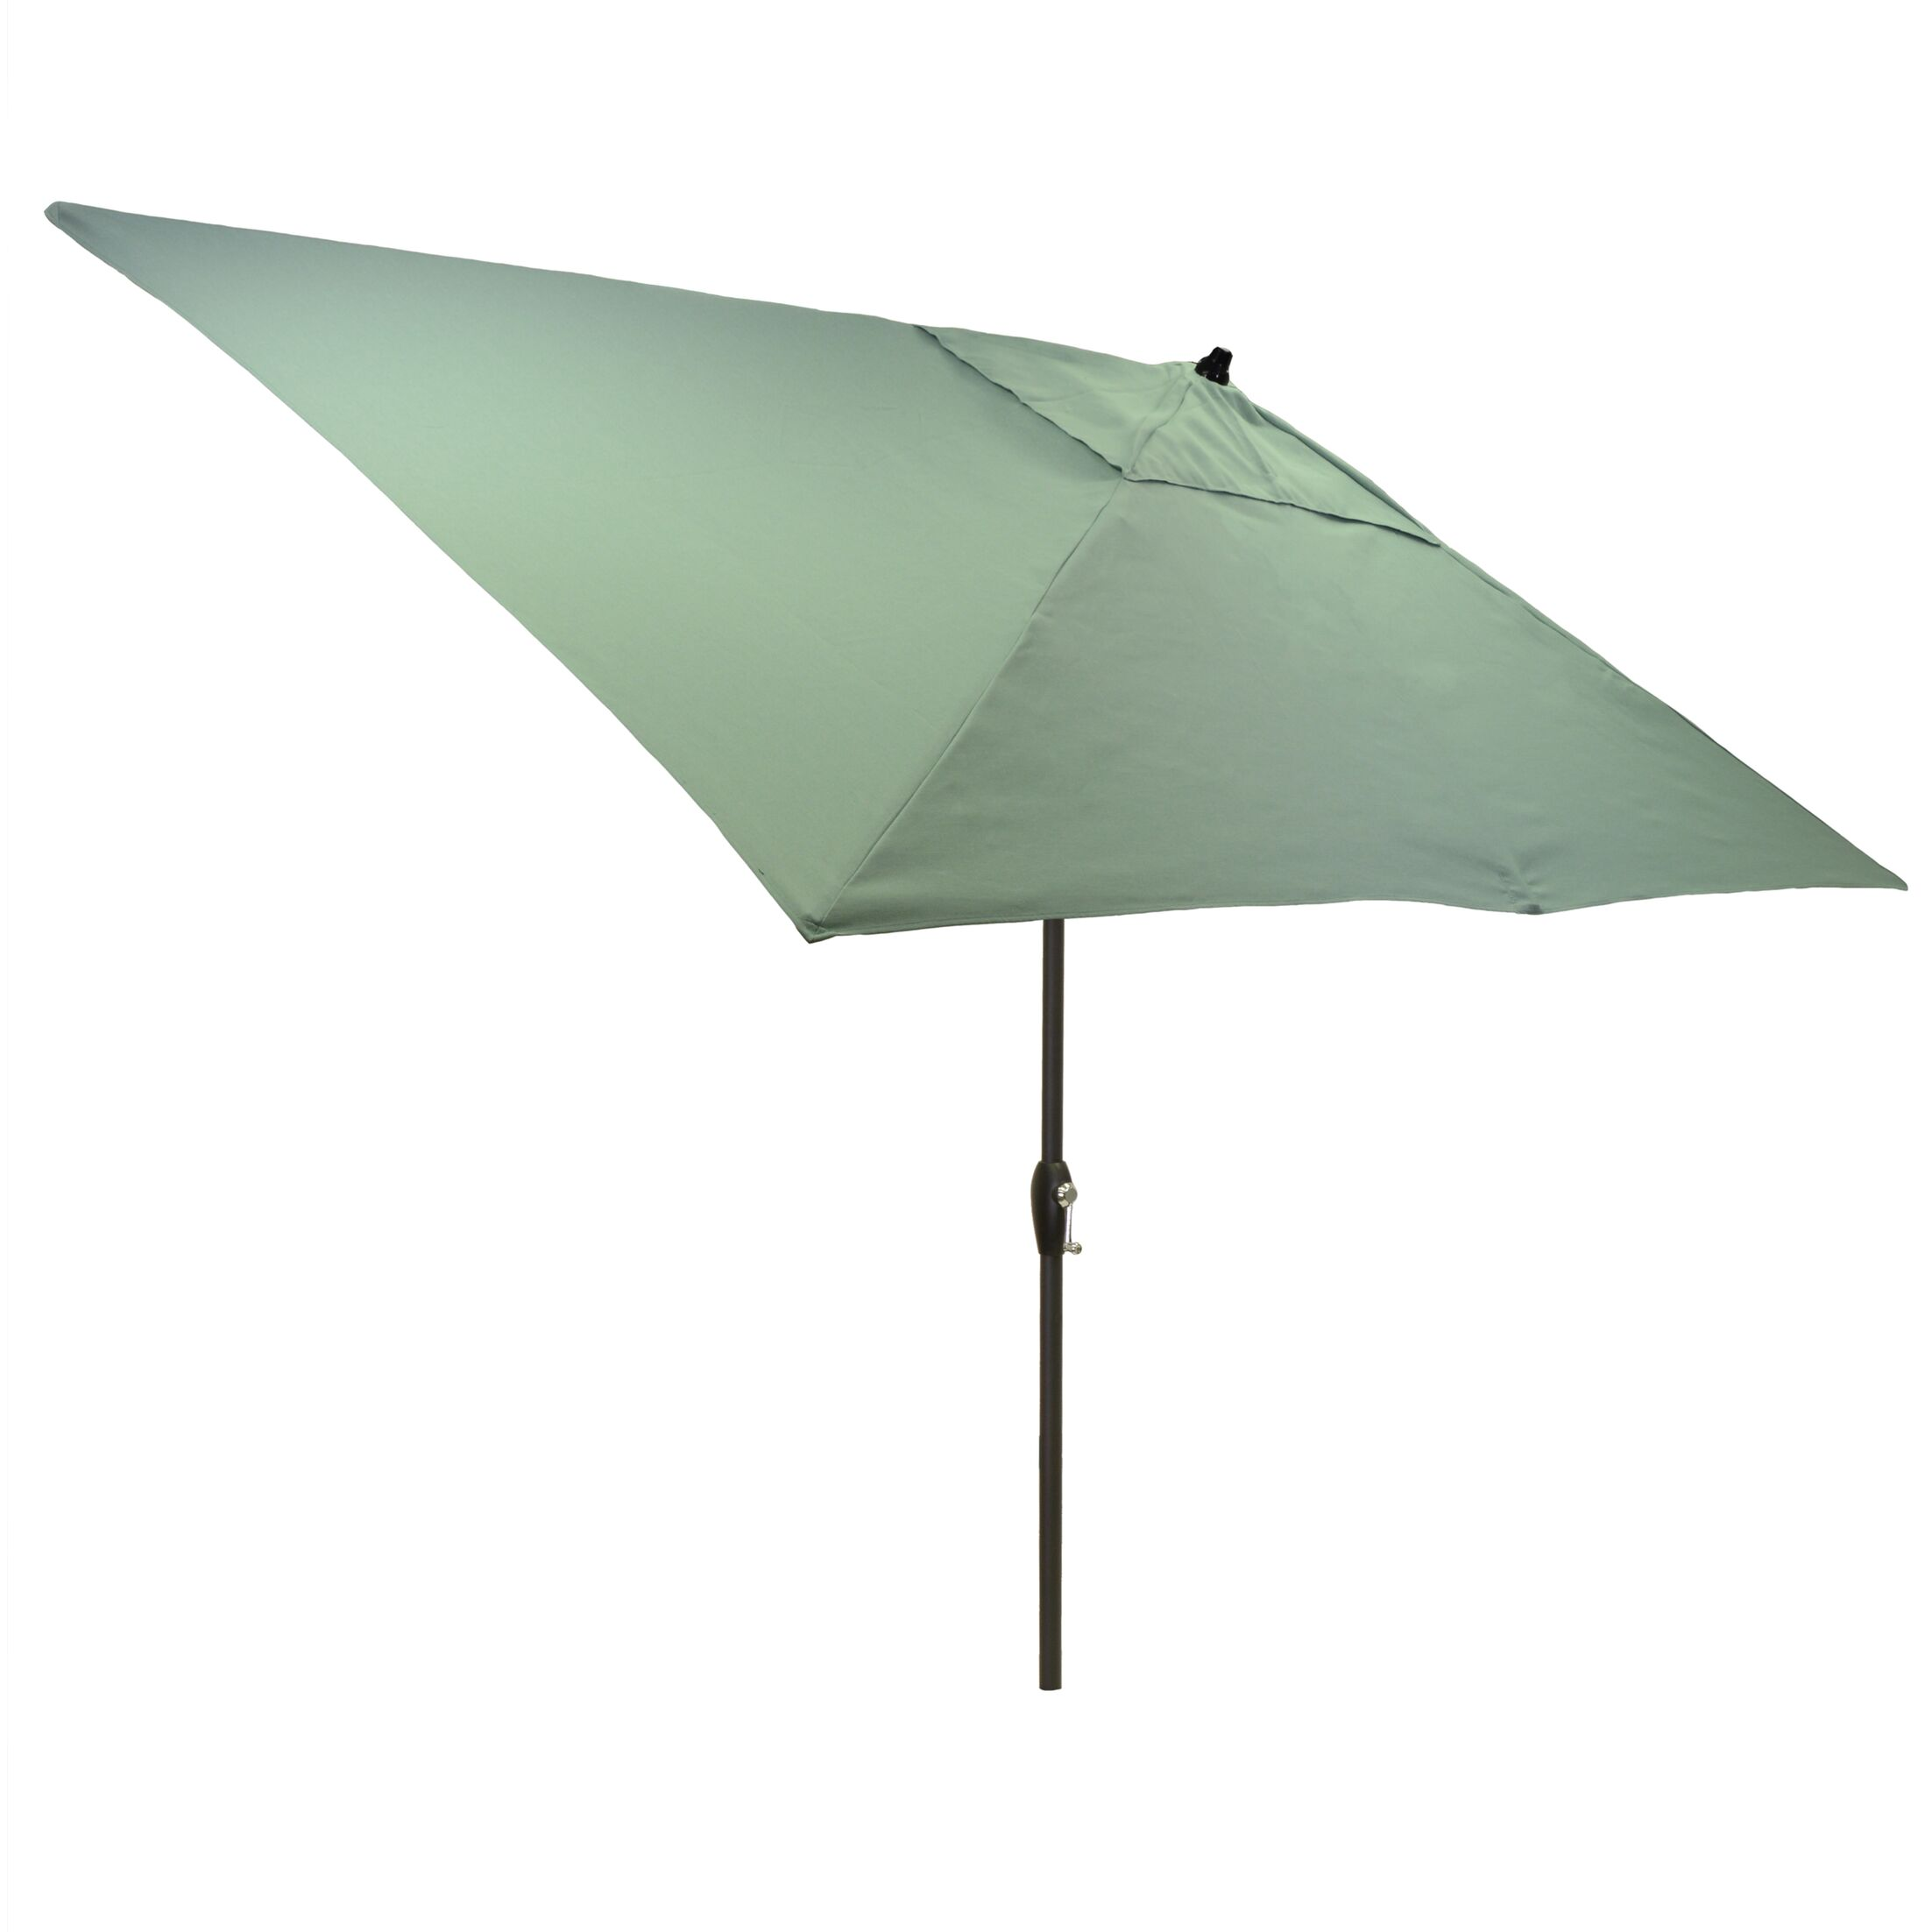 Hulme Solid 6.5' x 10' Rectangular Market Umbrella Fabric Color: Aqua